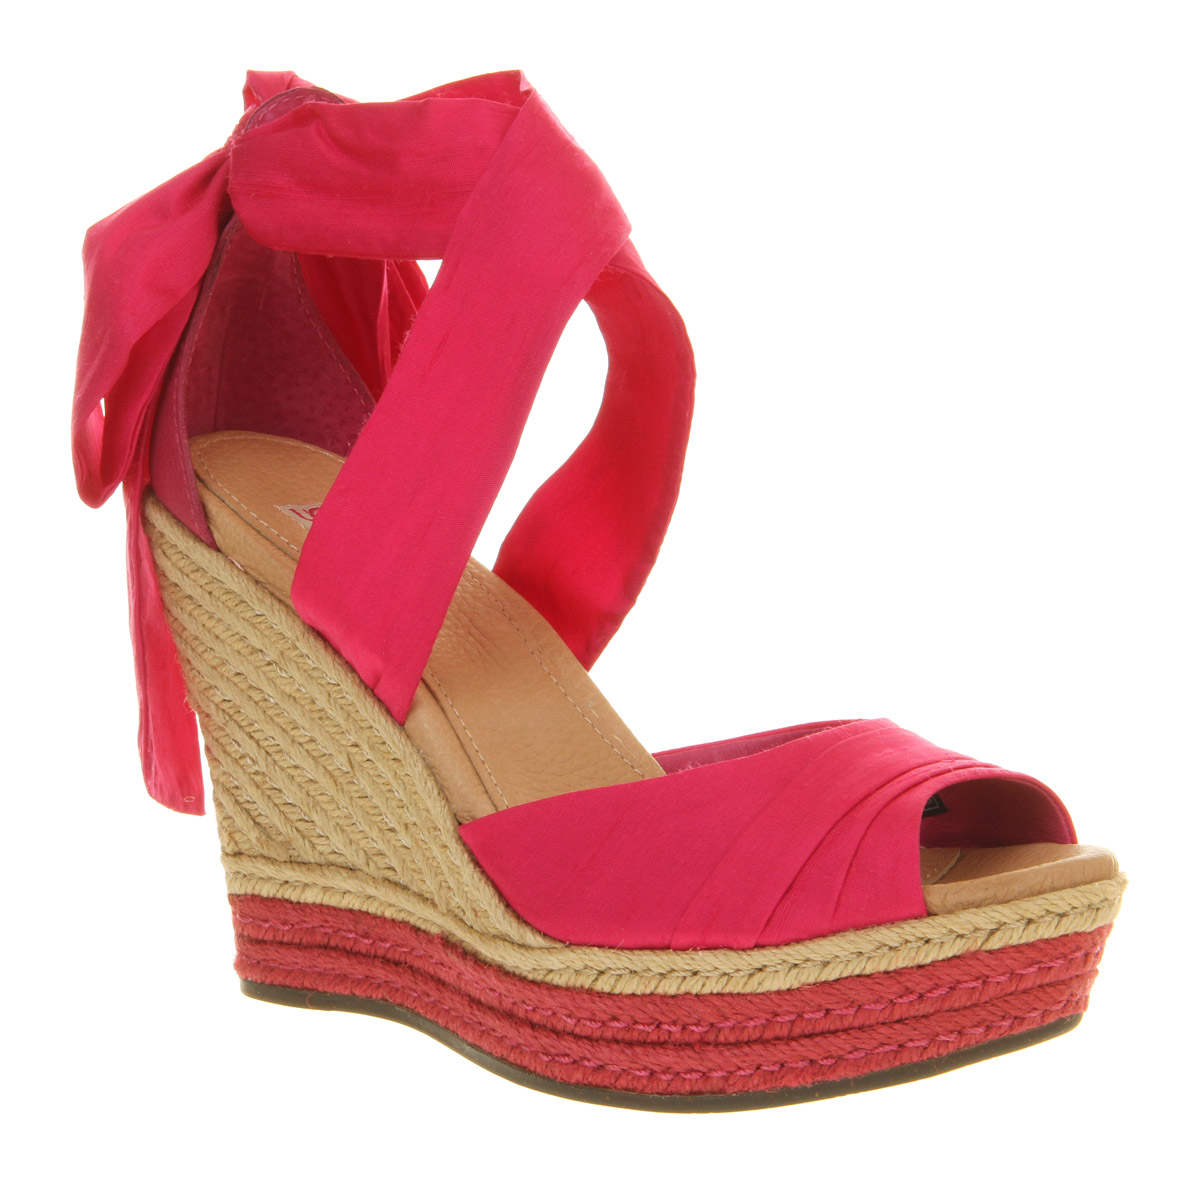 2c91bef2ca48 UGG Lucianna Wedge Sandal Pink Silk in Pink - Lyst